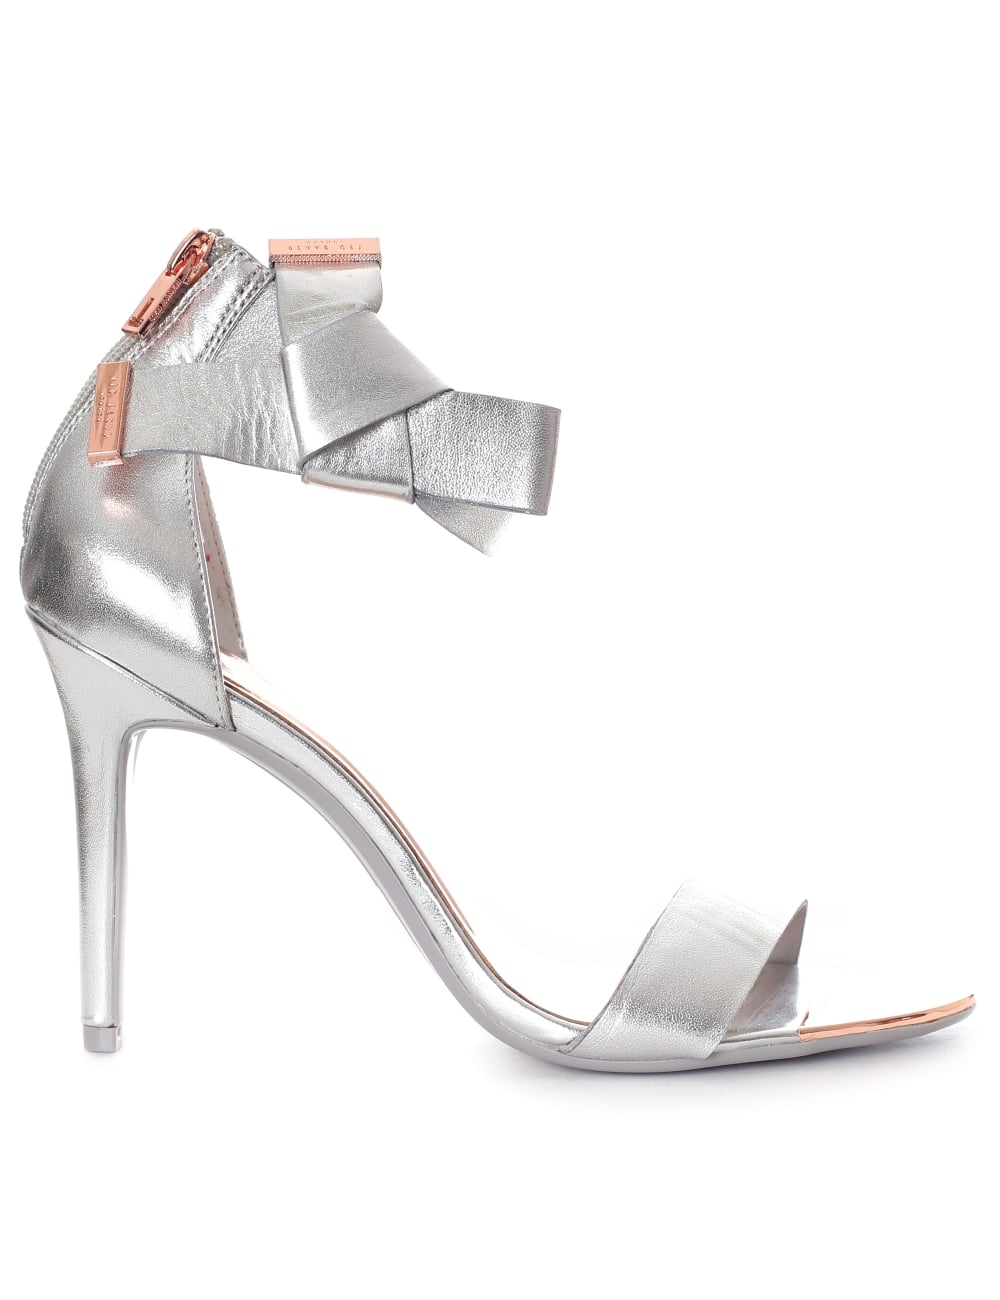 ted baker silver shoes new style 3ecdd